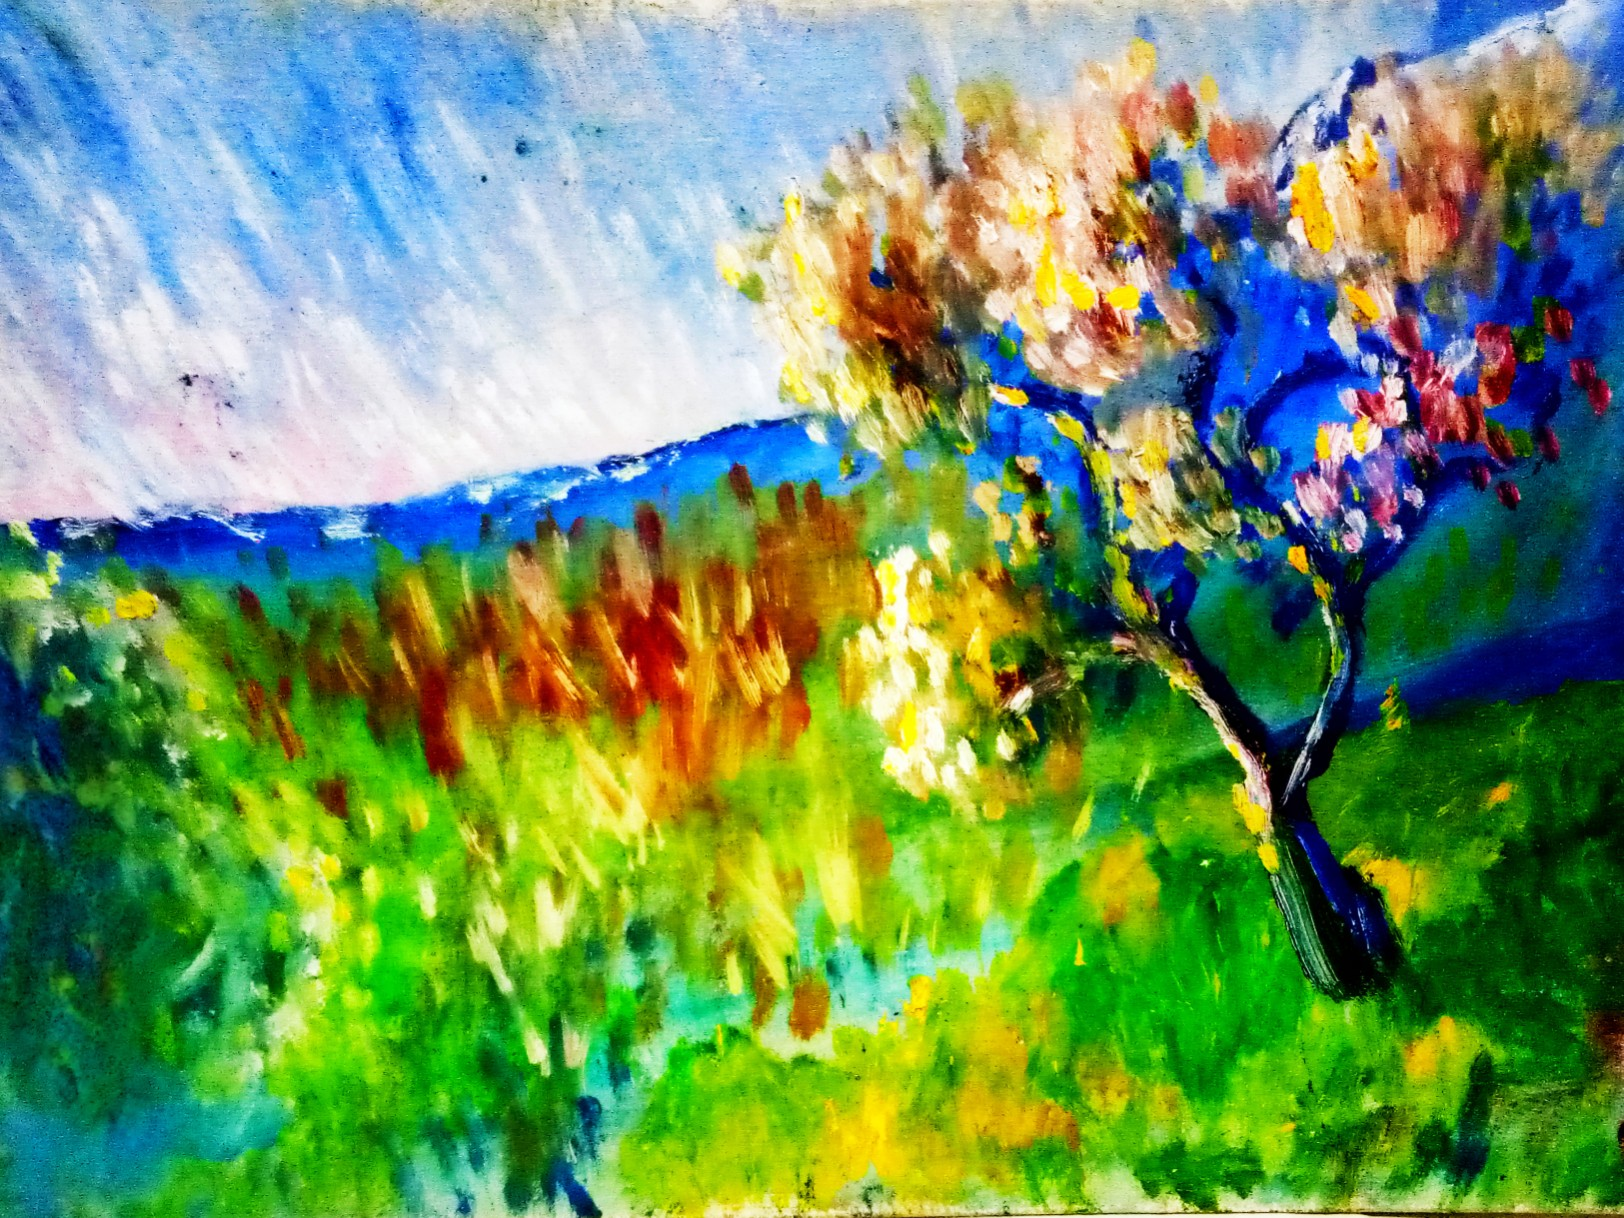 painting in the style of impressionism